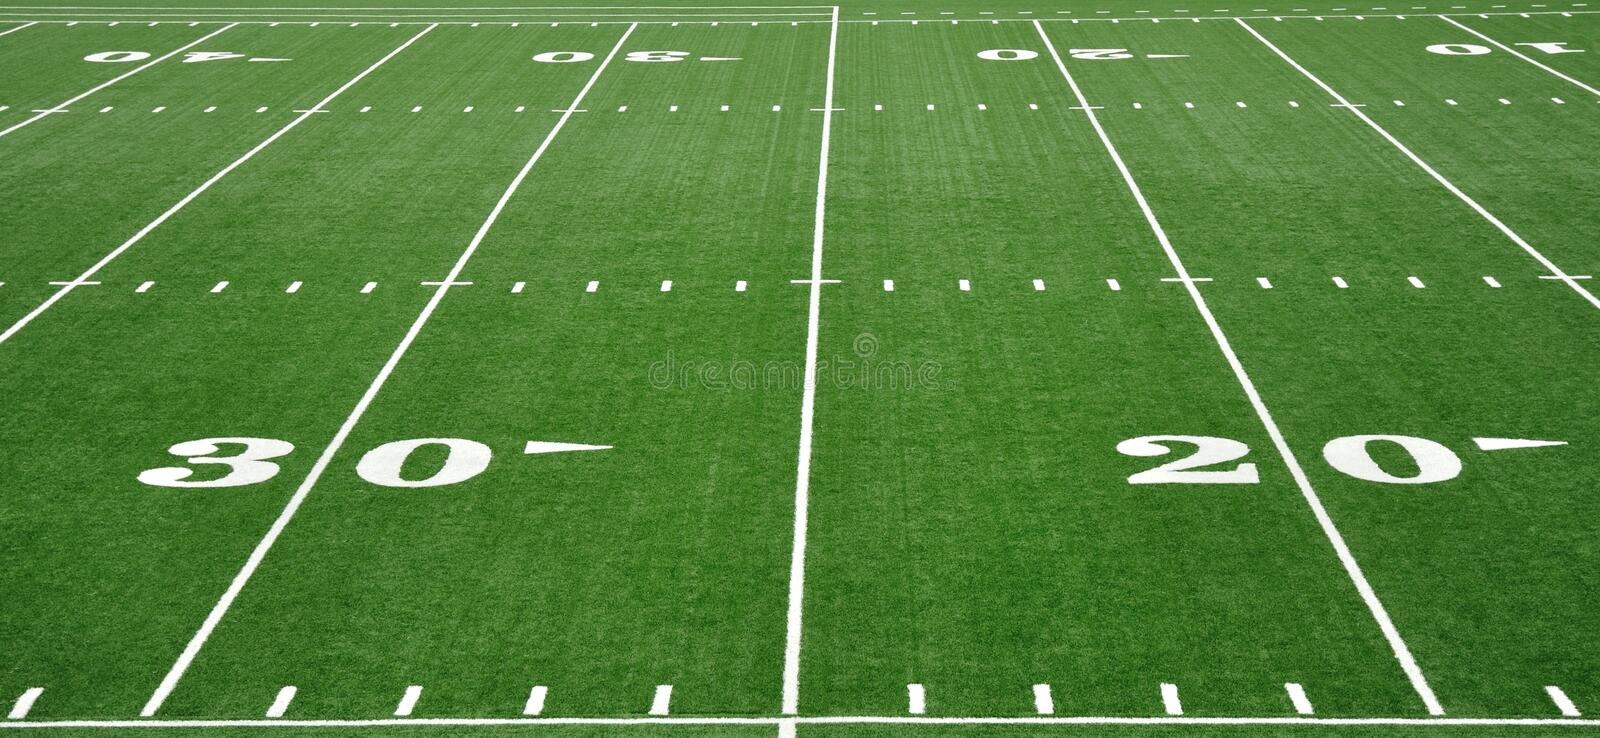 20 & 30 Yard Line on American Football Field royalty free stock photography